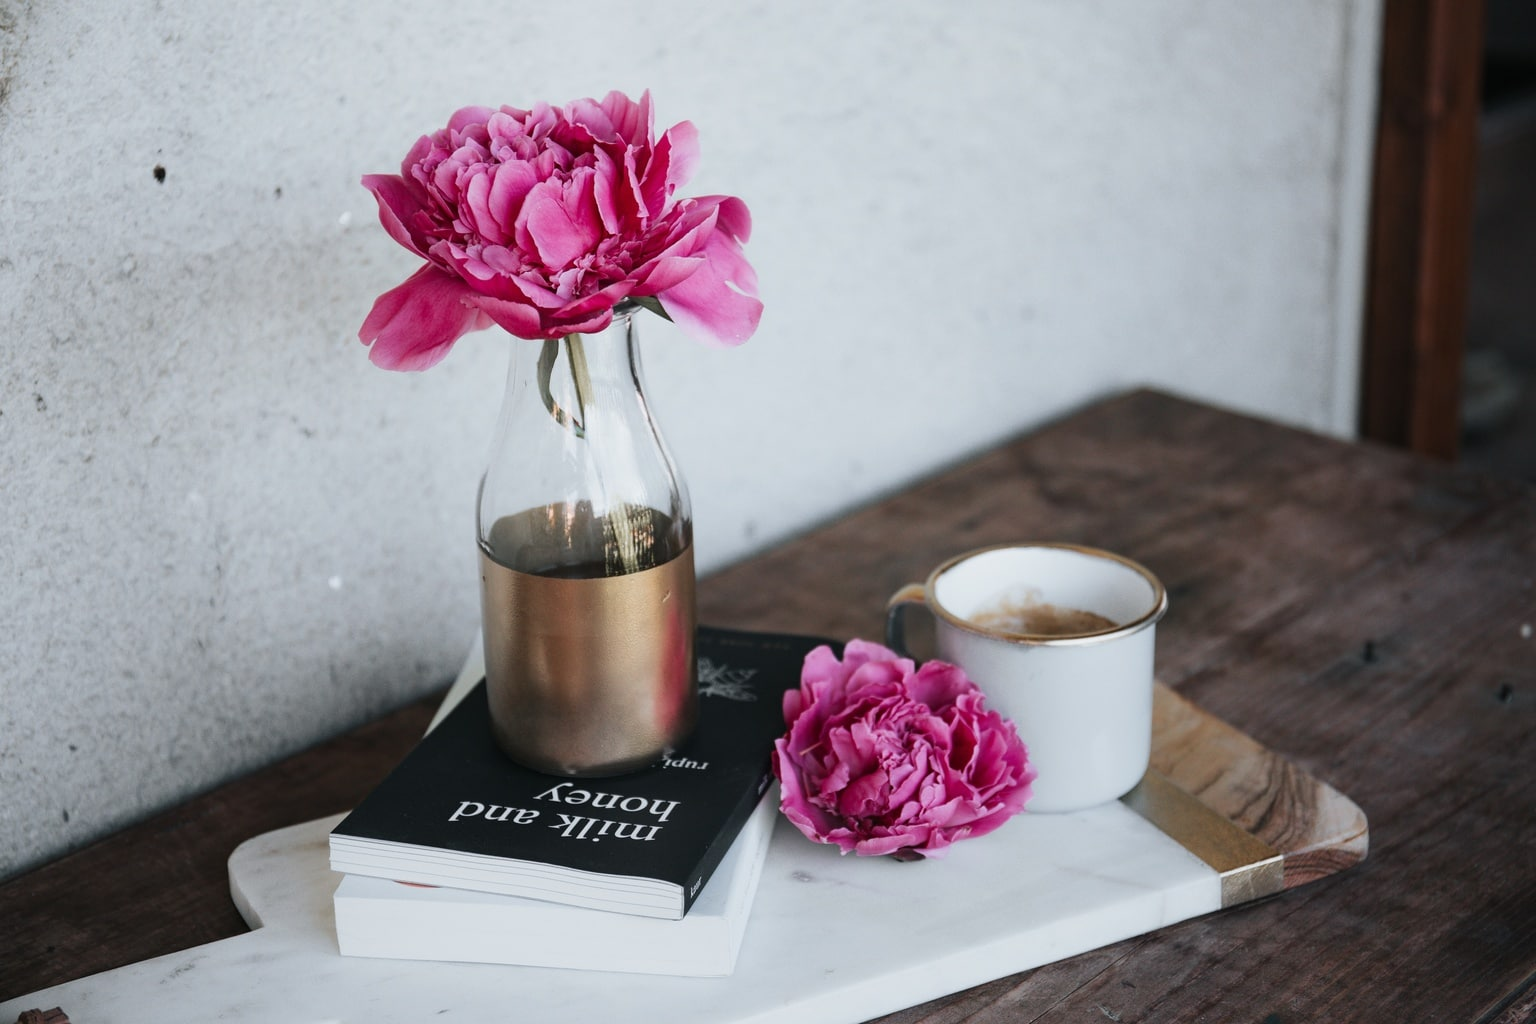 Flowers in a vase with books